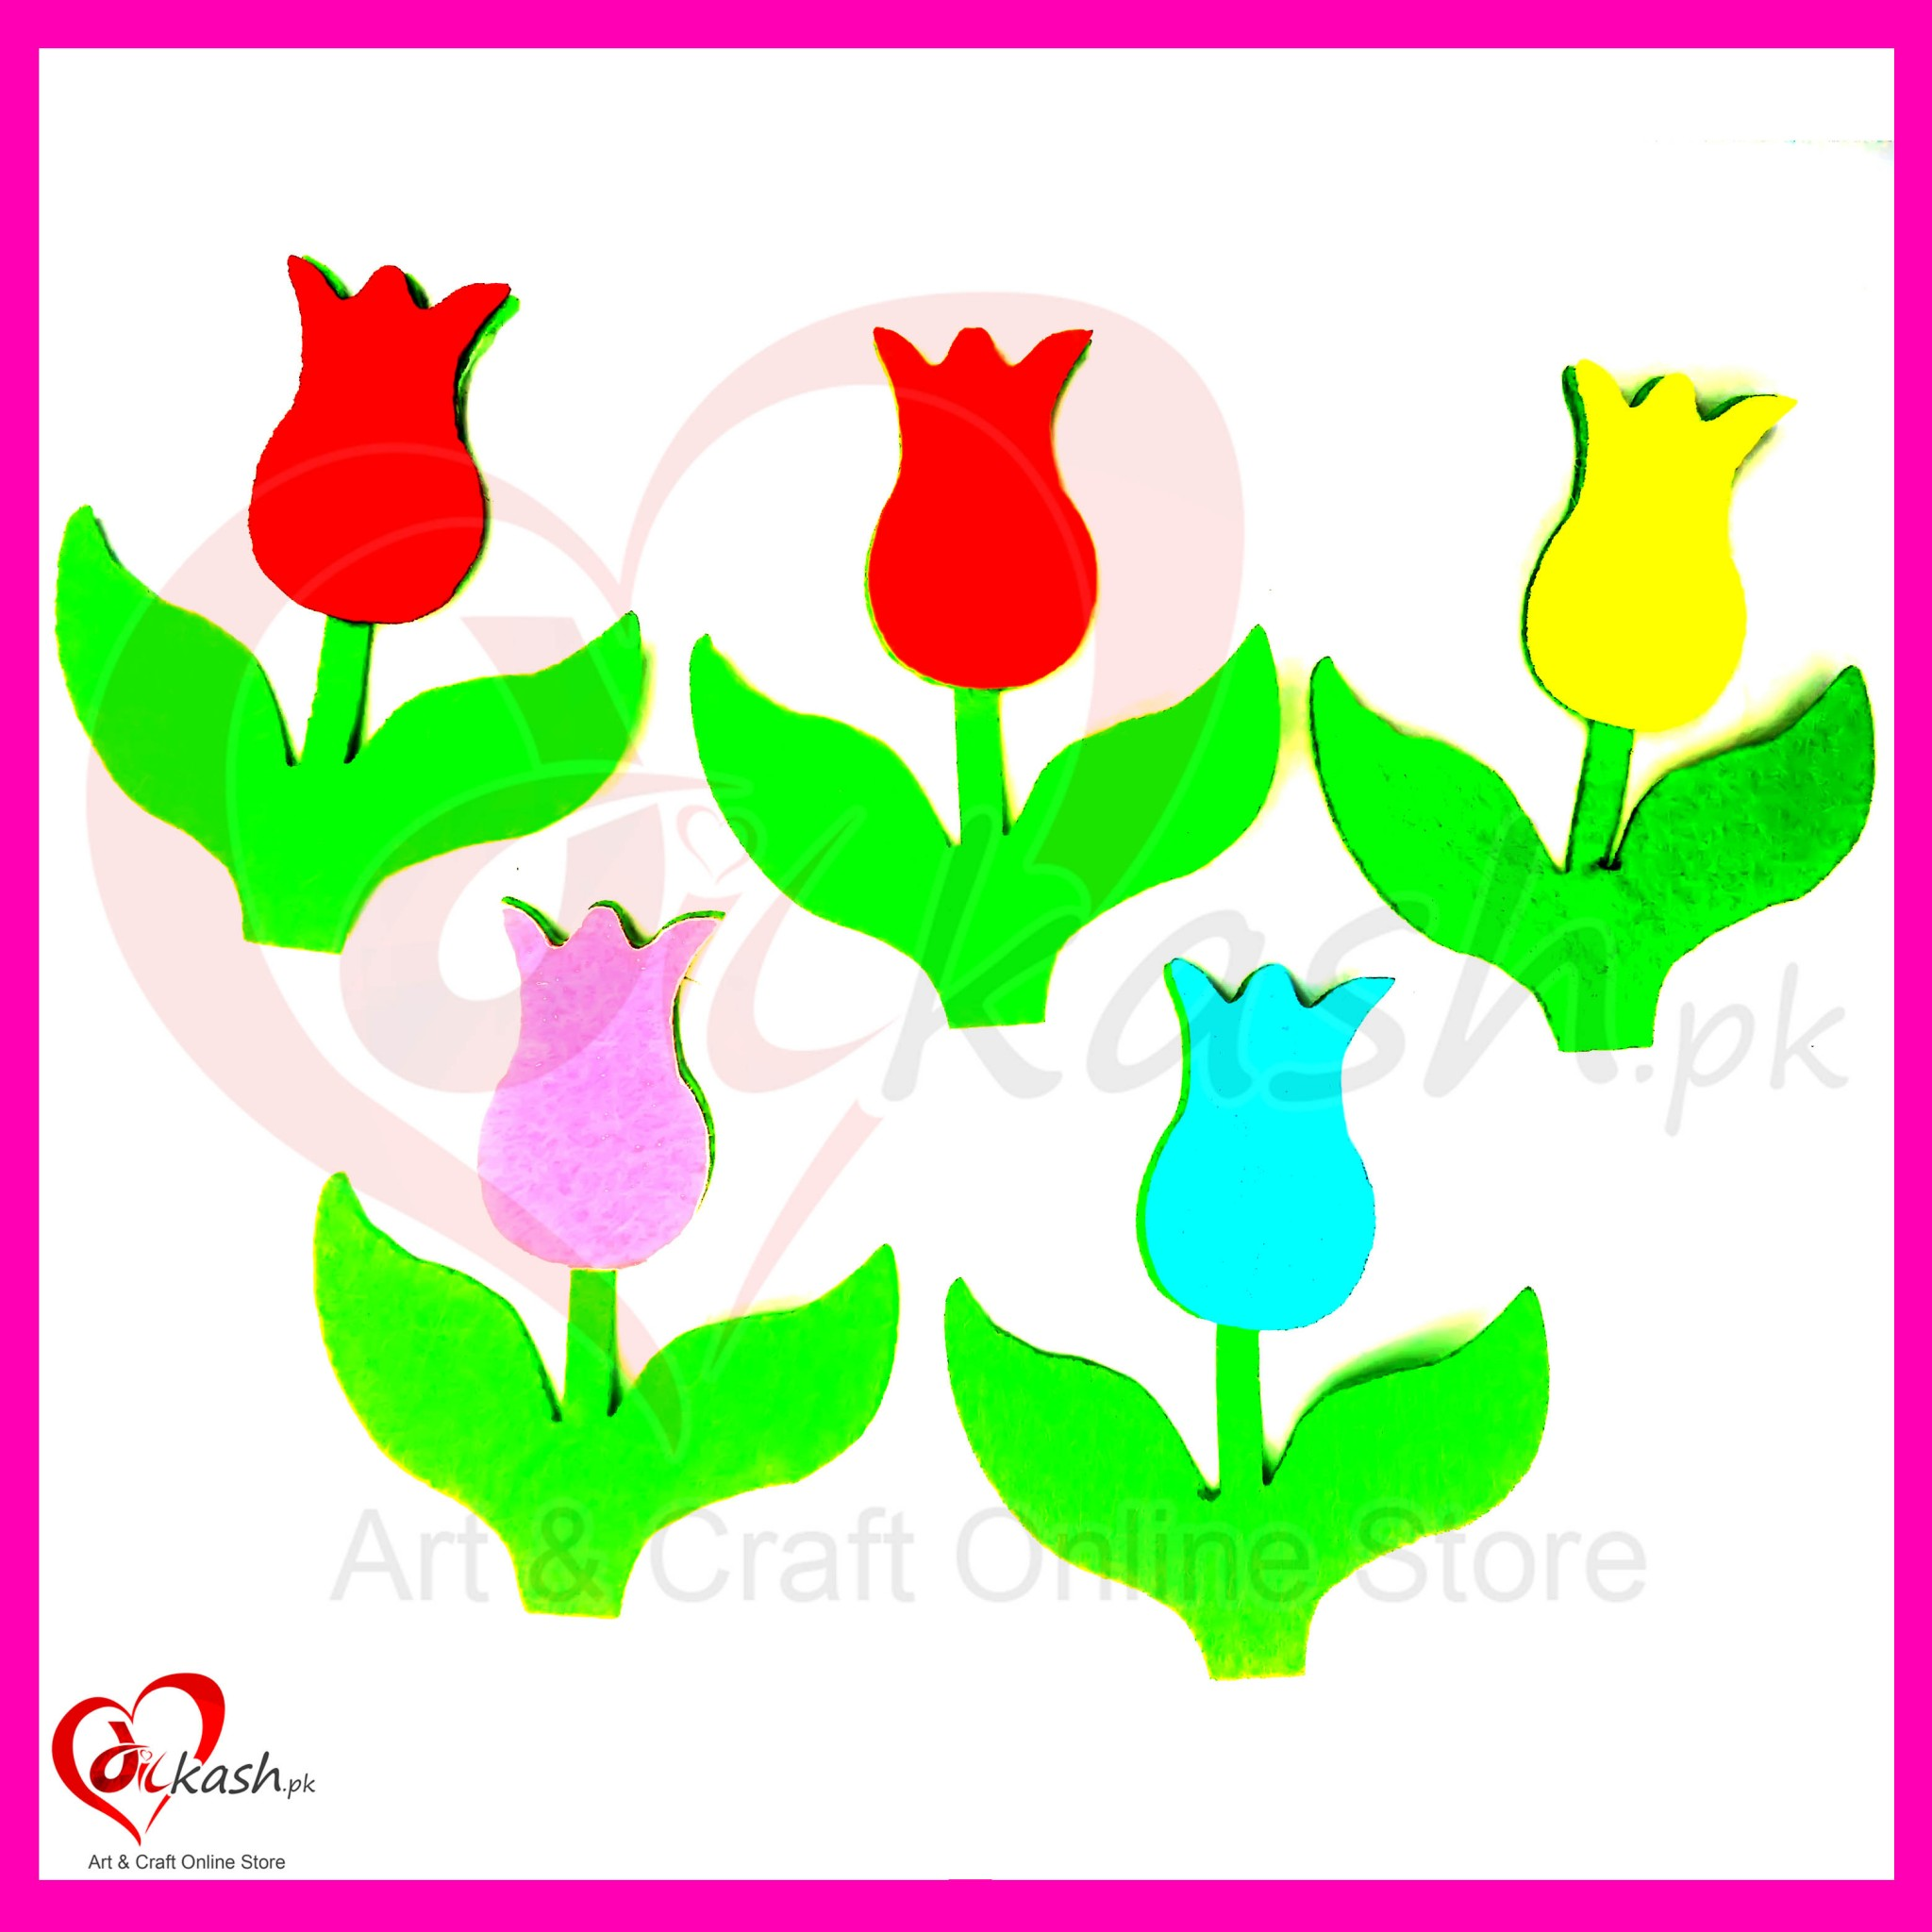 felt fabric cut outs shapes flowers art craft online store